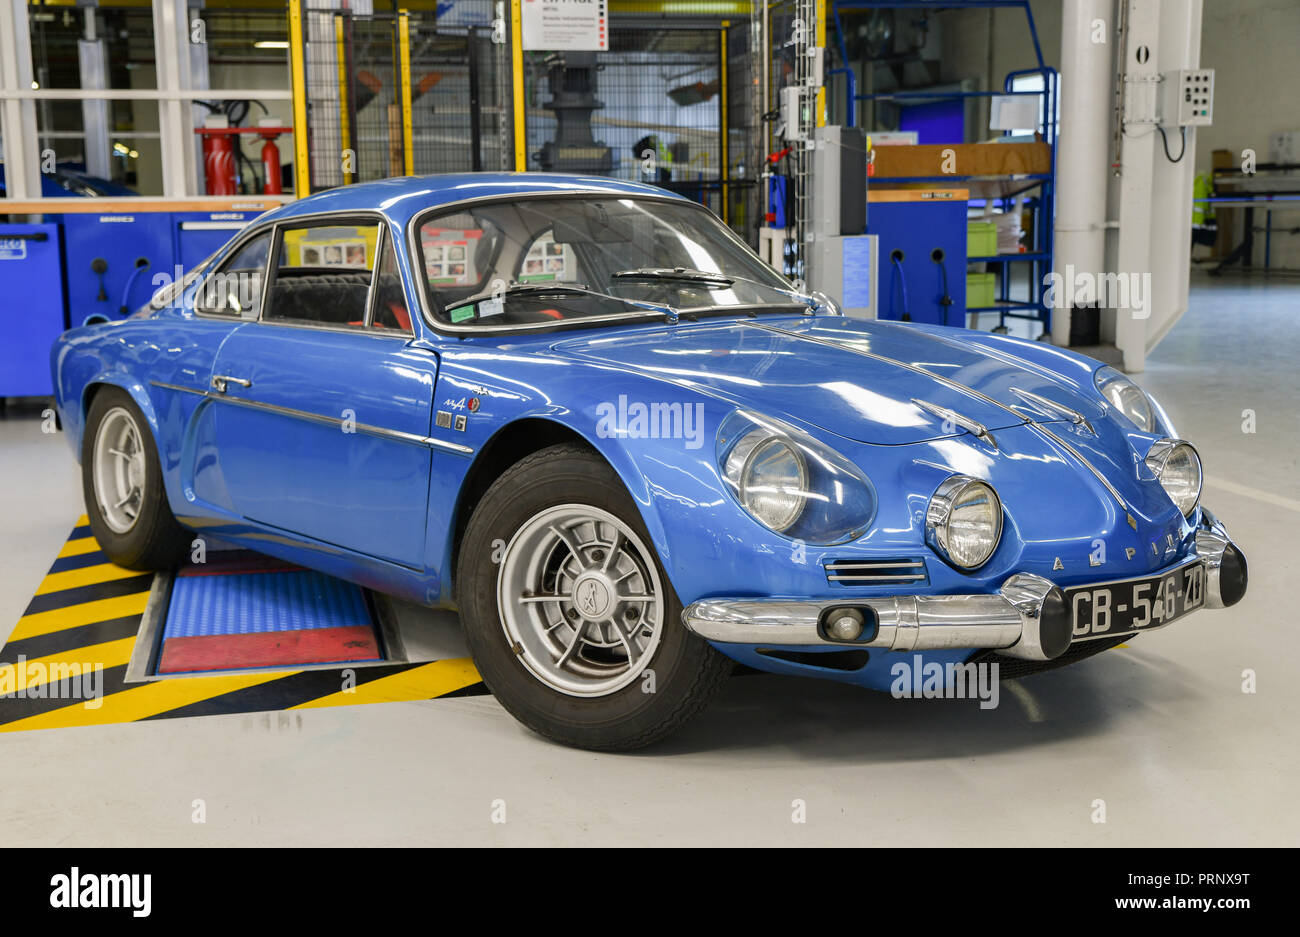 DIEPPE, FRANCE - JUNE 30, 2018: Renault Alpine car modele 110 Berlinette V85 on the exposition Vintage and classic Cars. - Stock Image